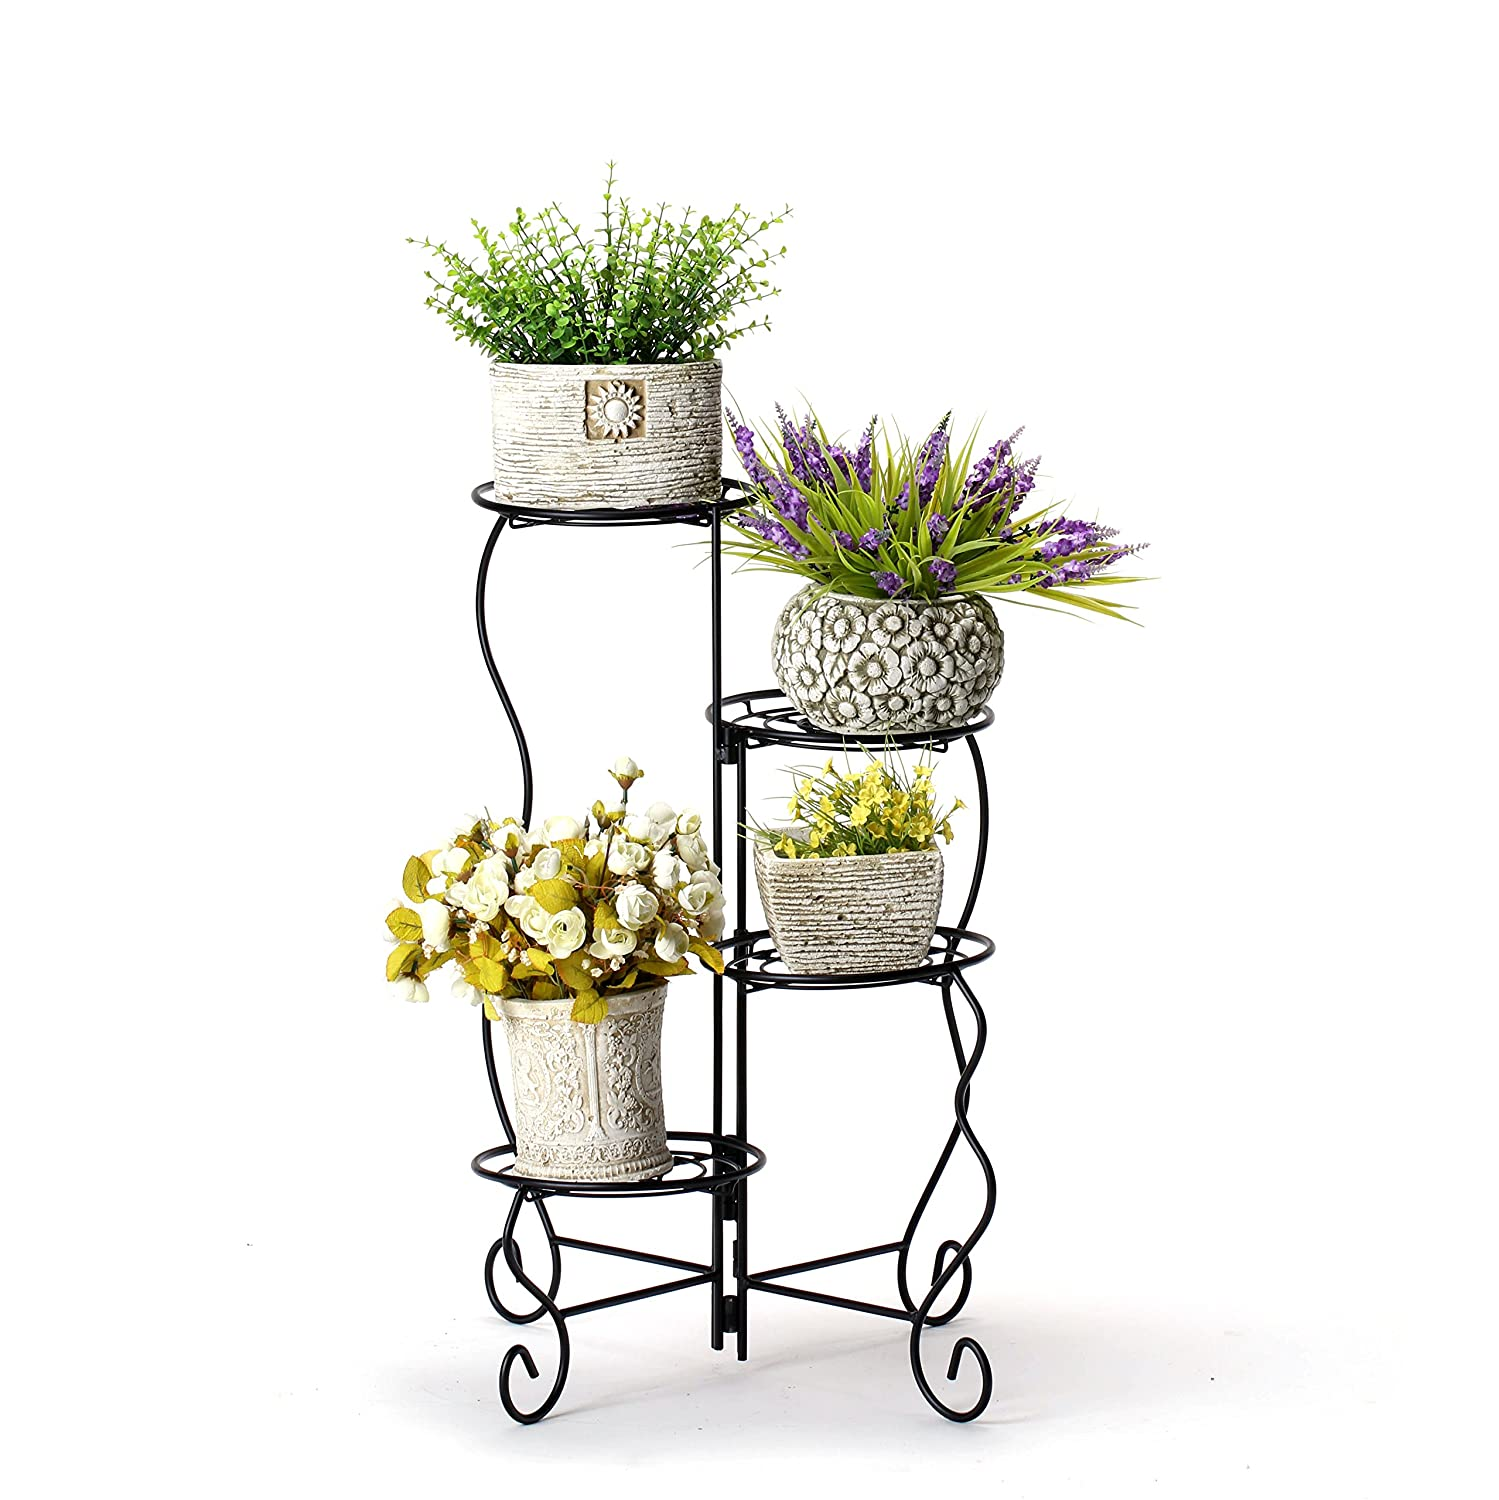 Worth HEAVY DUTY Plant Stand